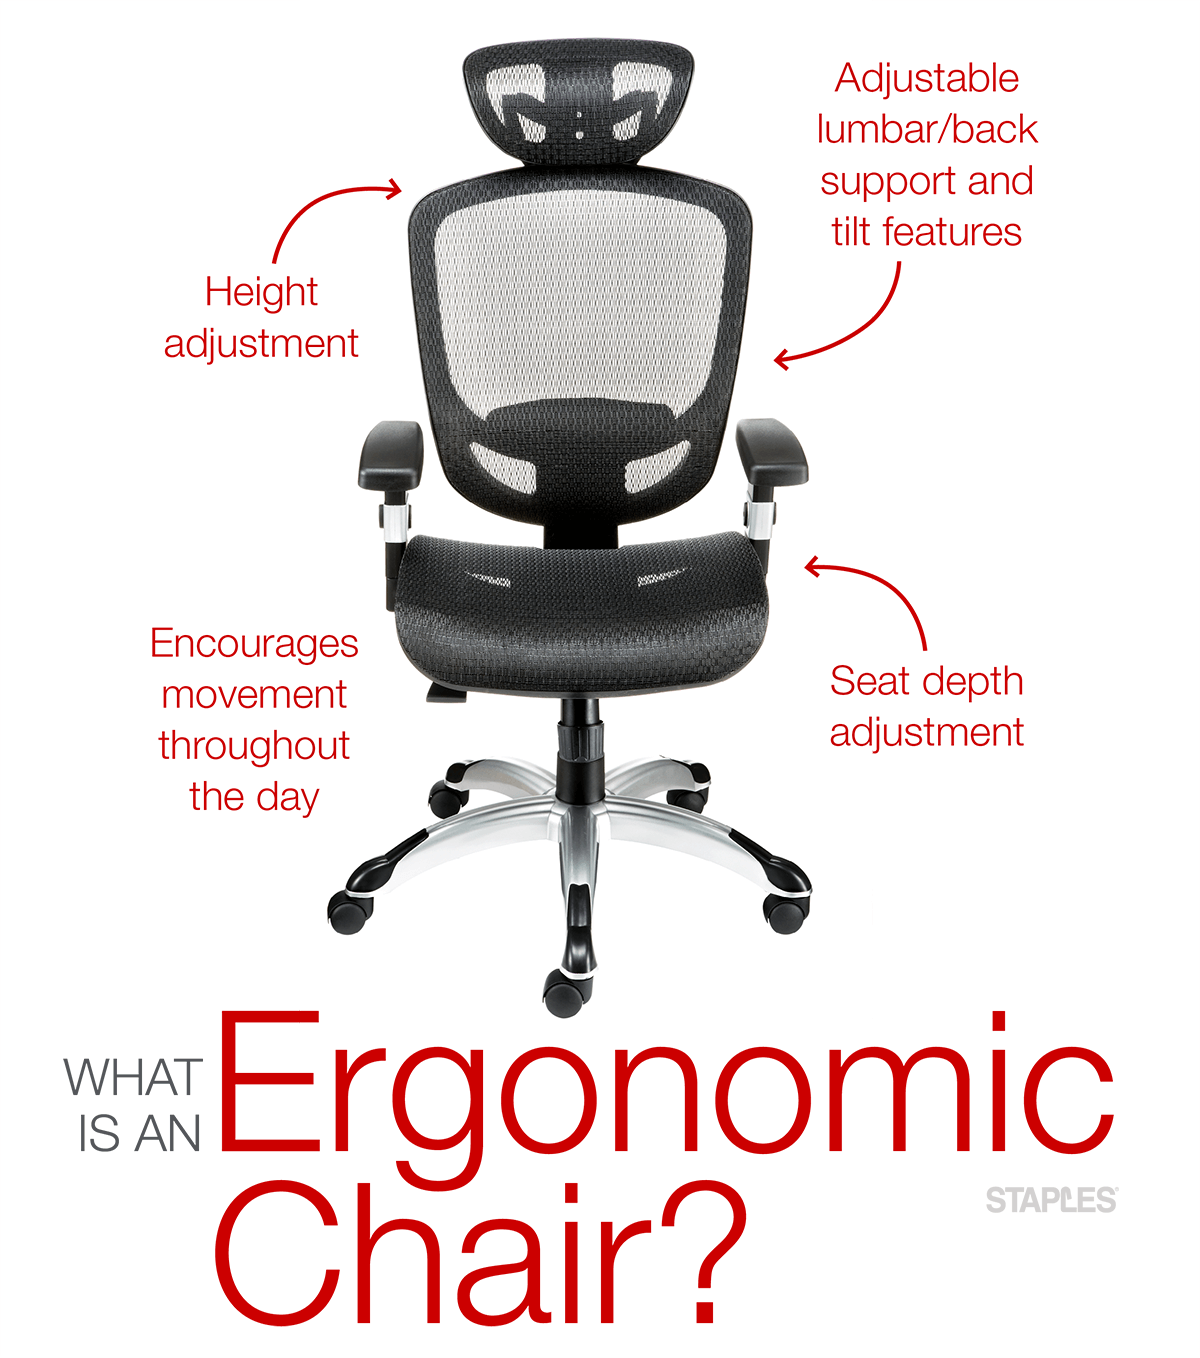 Posture Chairs For The Office Home Office Furniture Ideas Check More At Http Www Drjamesghoodblog Com Posture Chairs For The Office